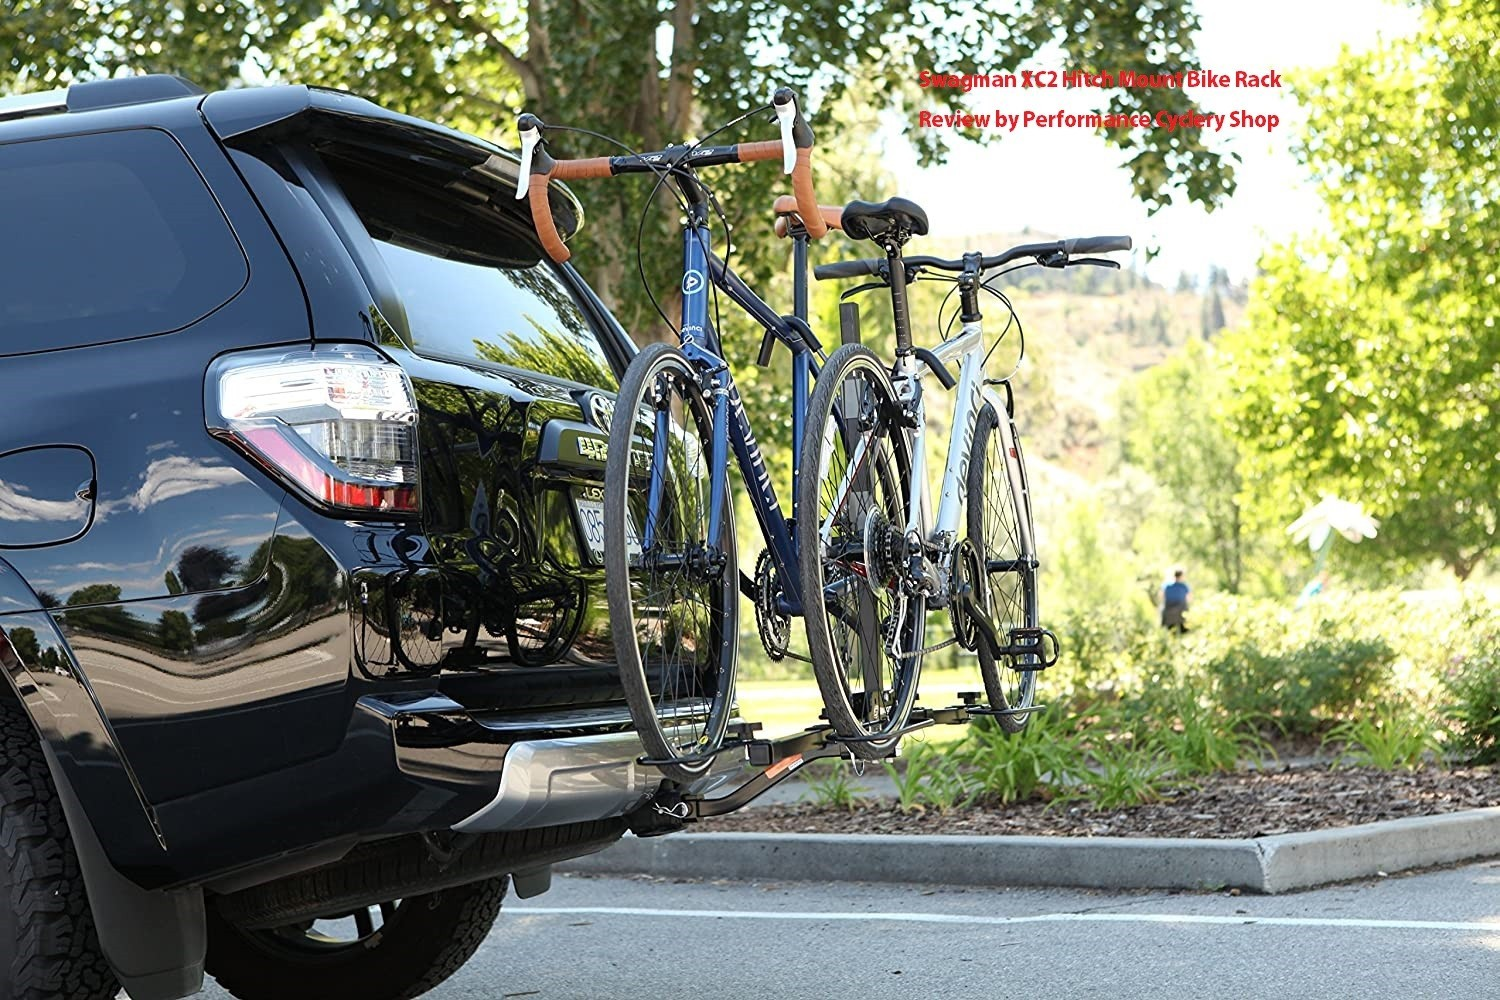 The Best Hitch Bike Rack For Subaru Outback